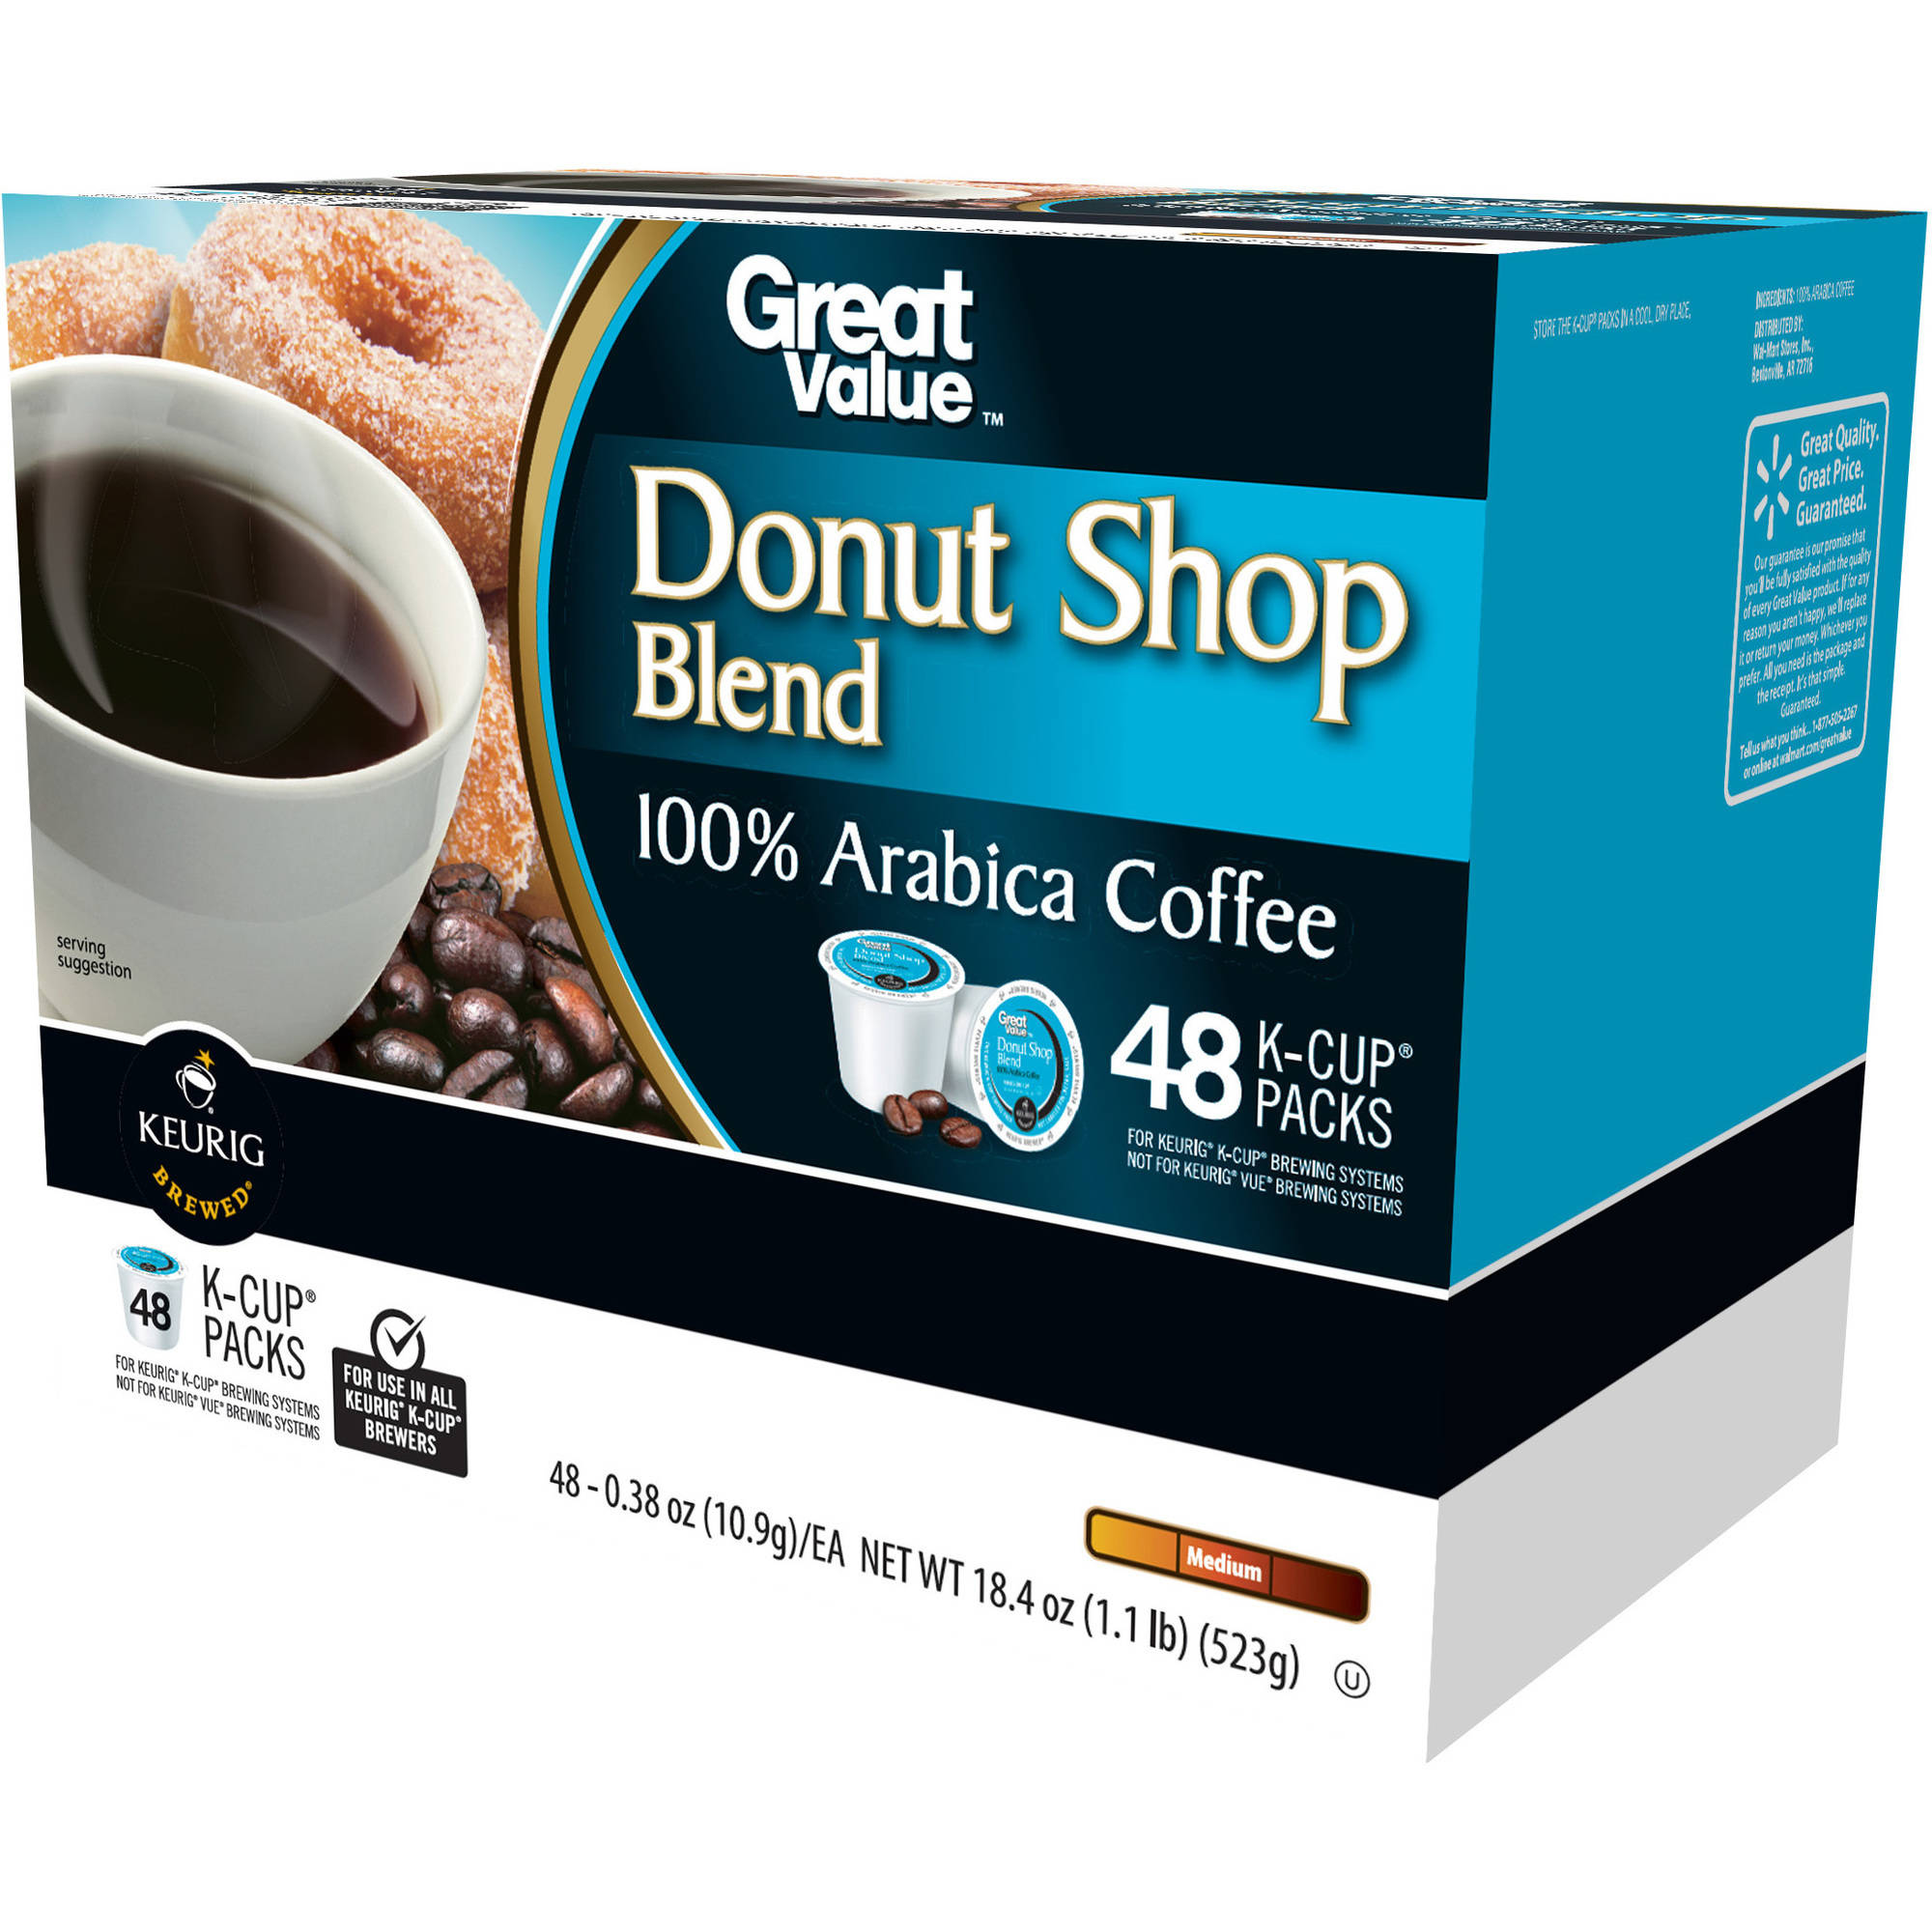 Great Value Donut Shop Blend Medium Roast Coffee K-Cup Packs, 0.38 oz, 48 count